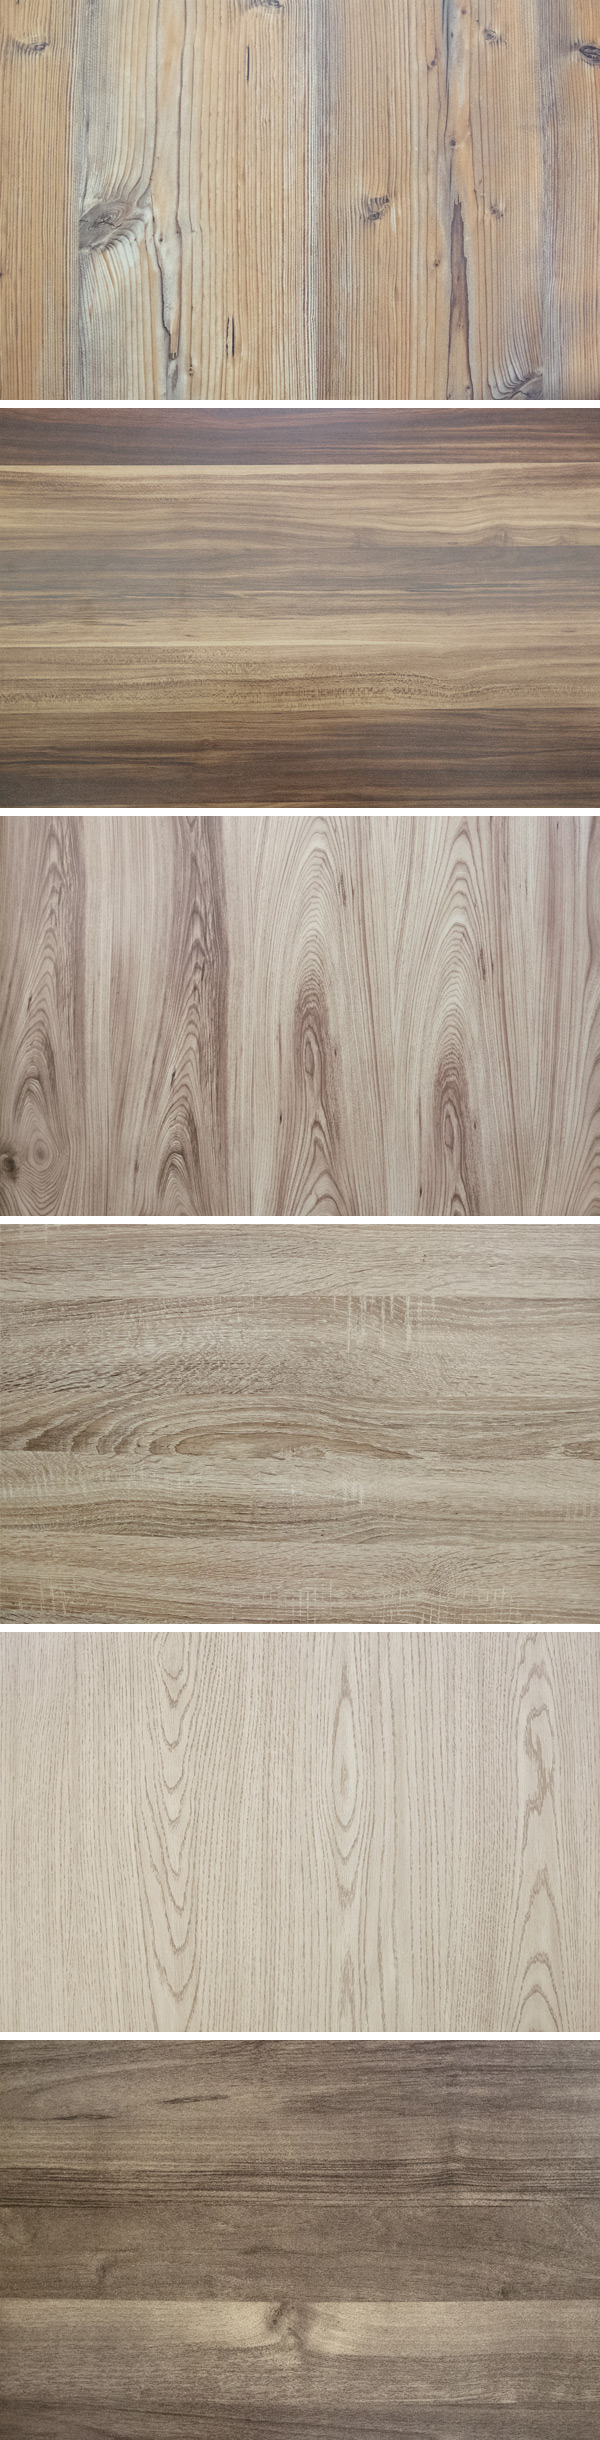 6 fine wood textures vol1 graphicburger full preview thecheapjerseys Image collections